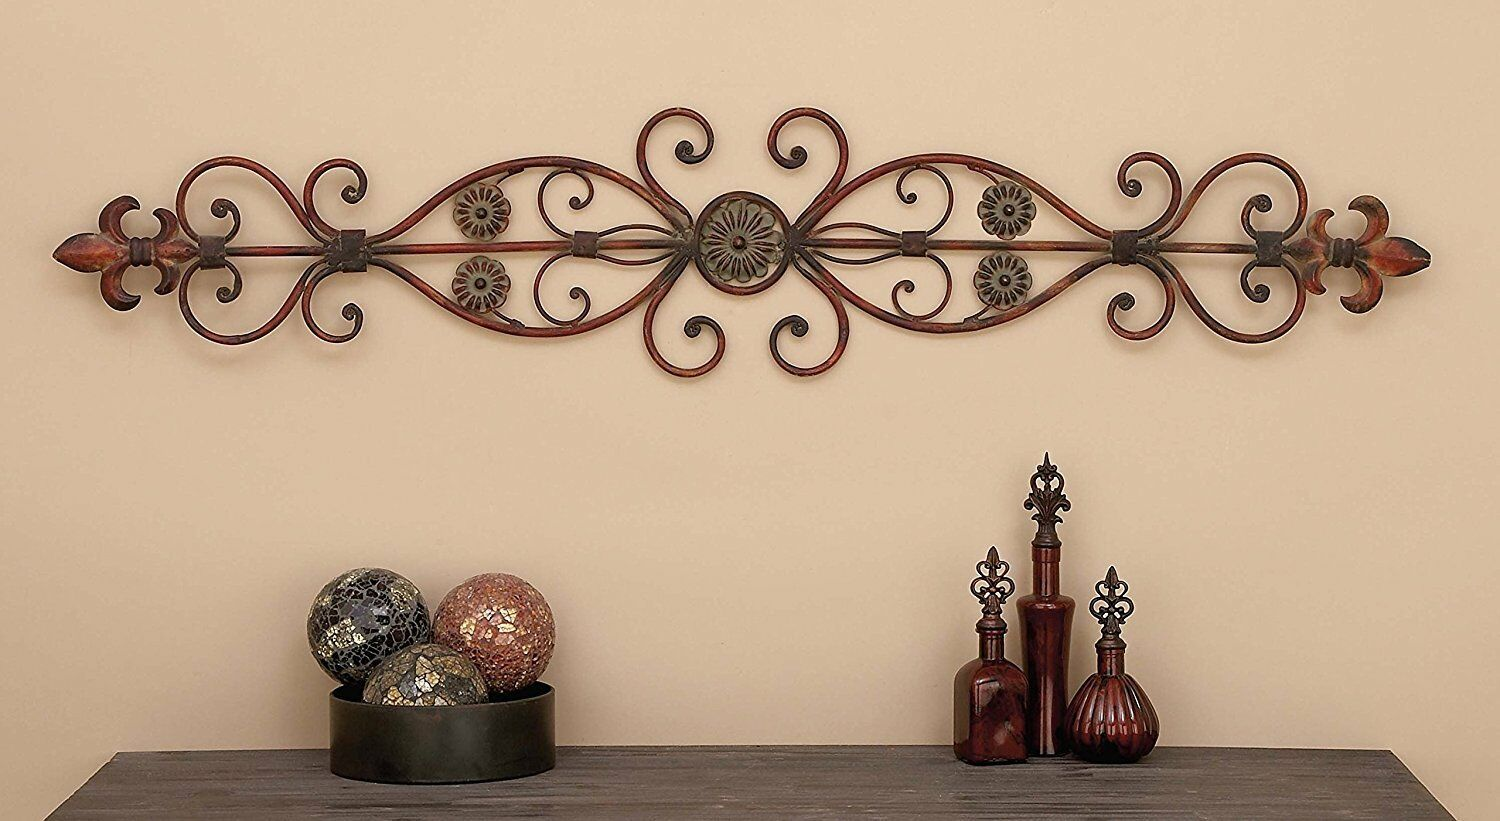 Large Decorative Rustic Scrolling Wrought Iron Wall Grille Art Panel Home Decor 1 Of 11only 3 Available See More